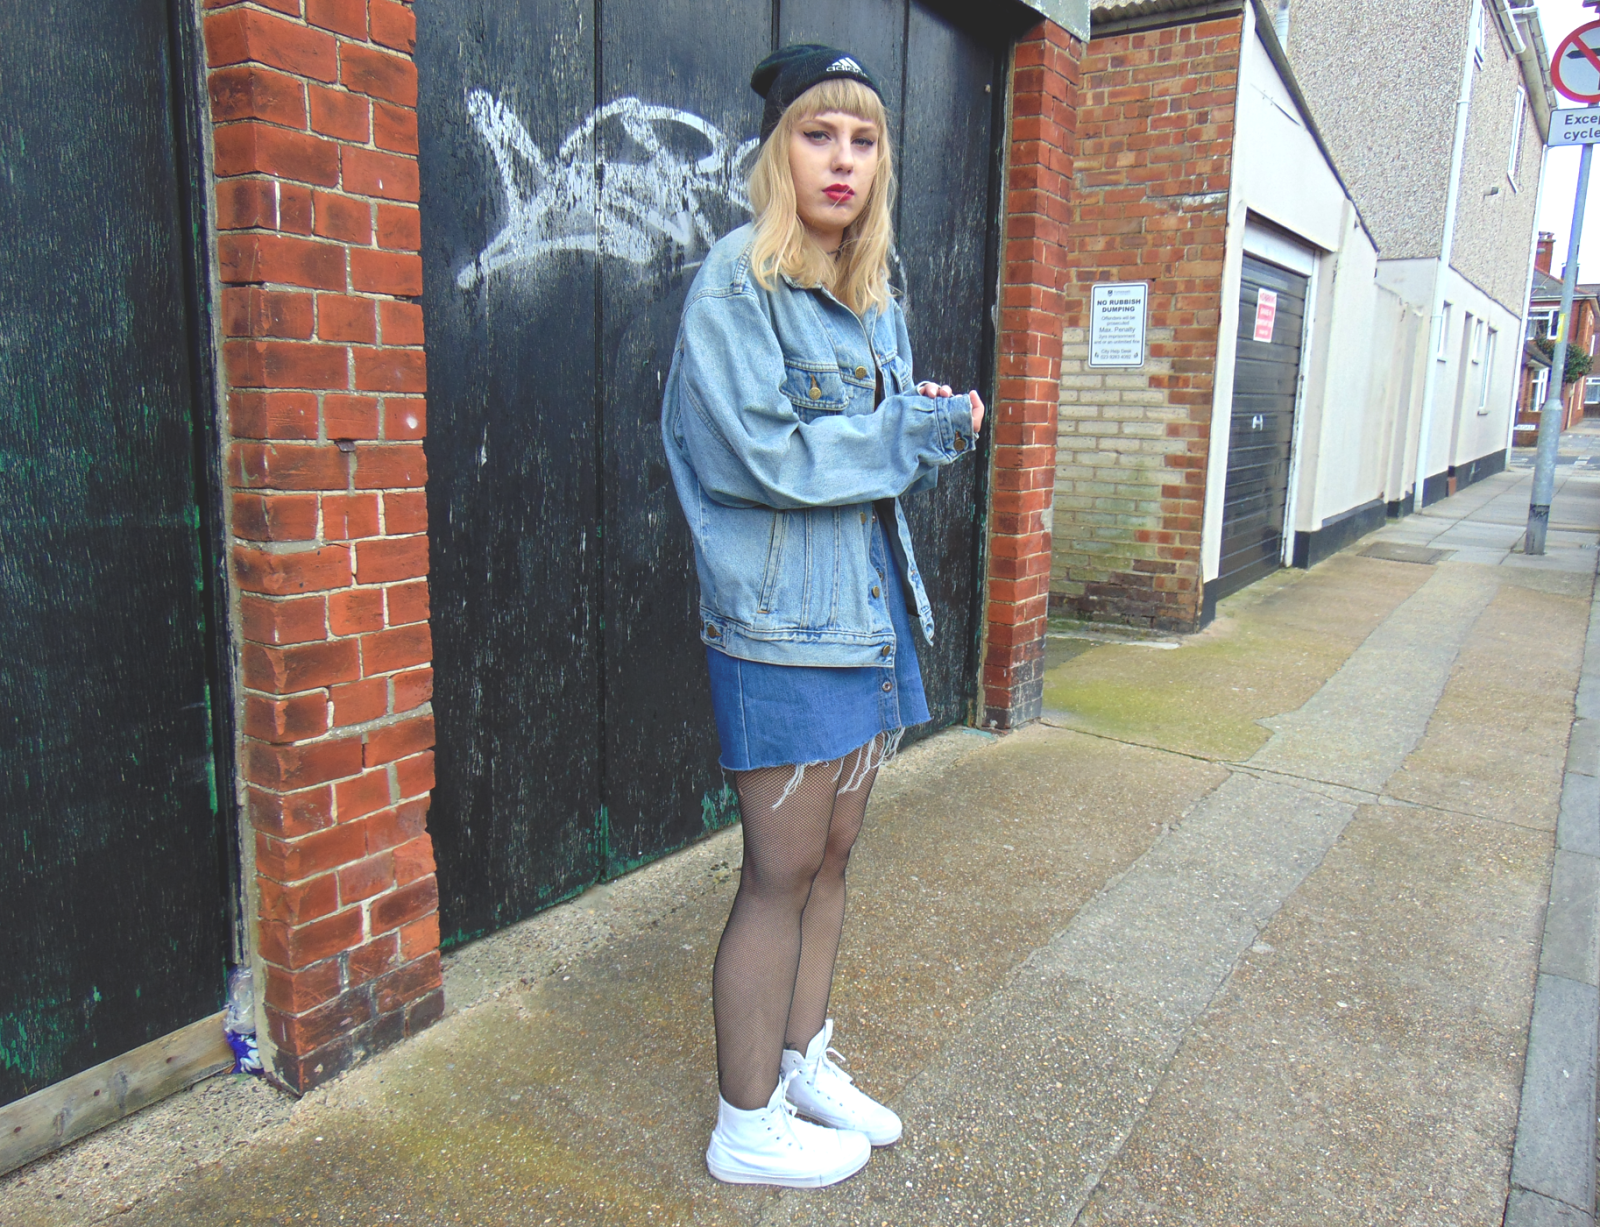 sport luxe fashion style, sport luxe ootd, double denim, vintage denim, denim button down a-line skirt, vintage oversized denim jacket, all white high top converse, chuck 2, chuck ii converse